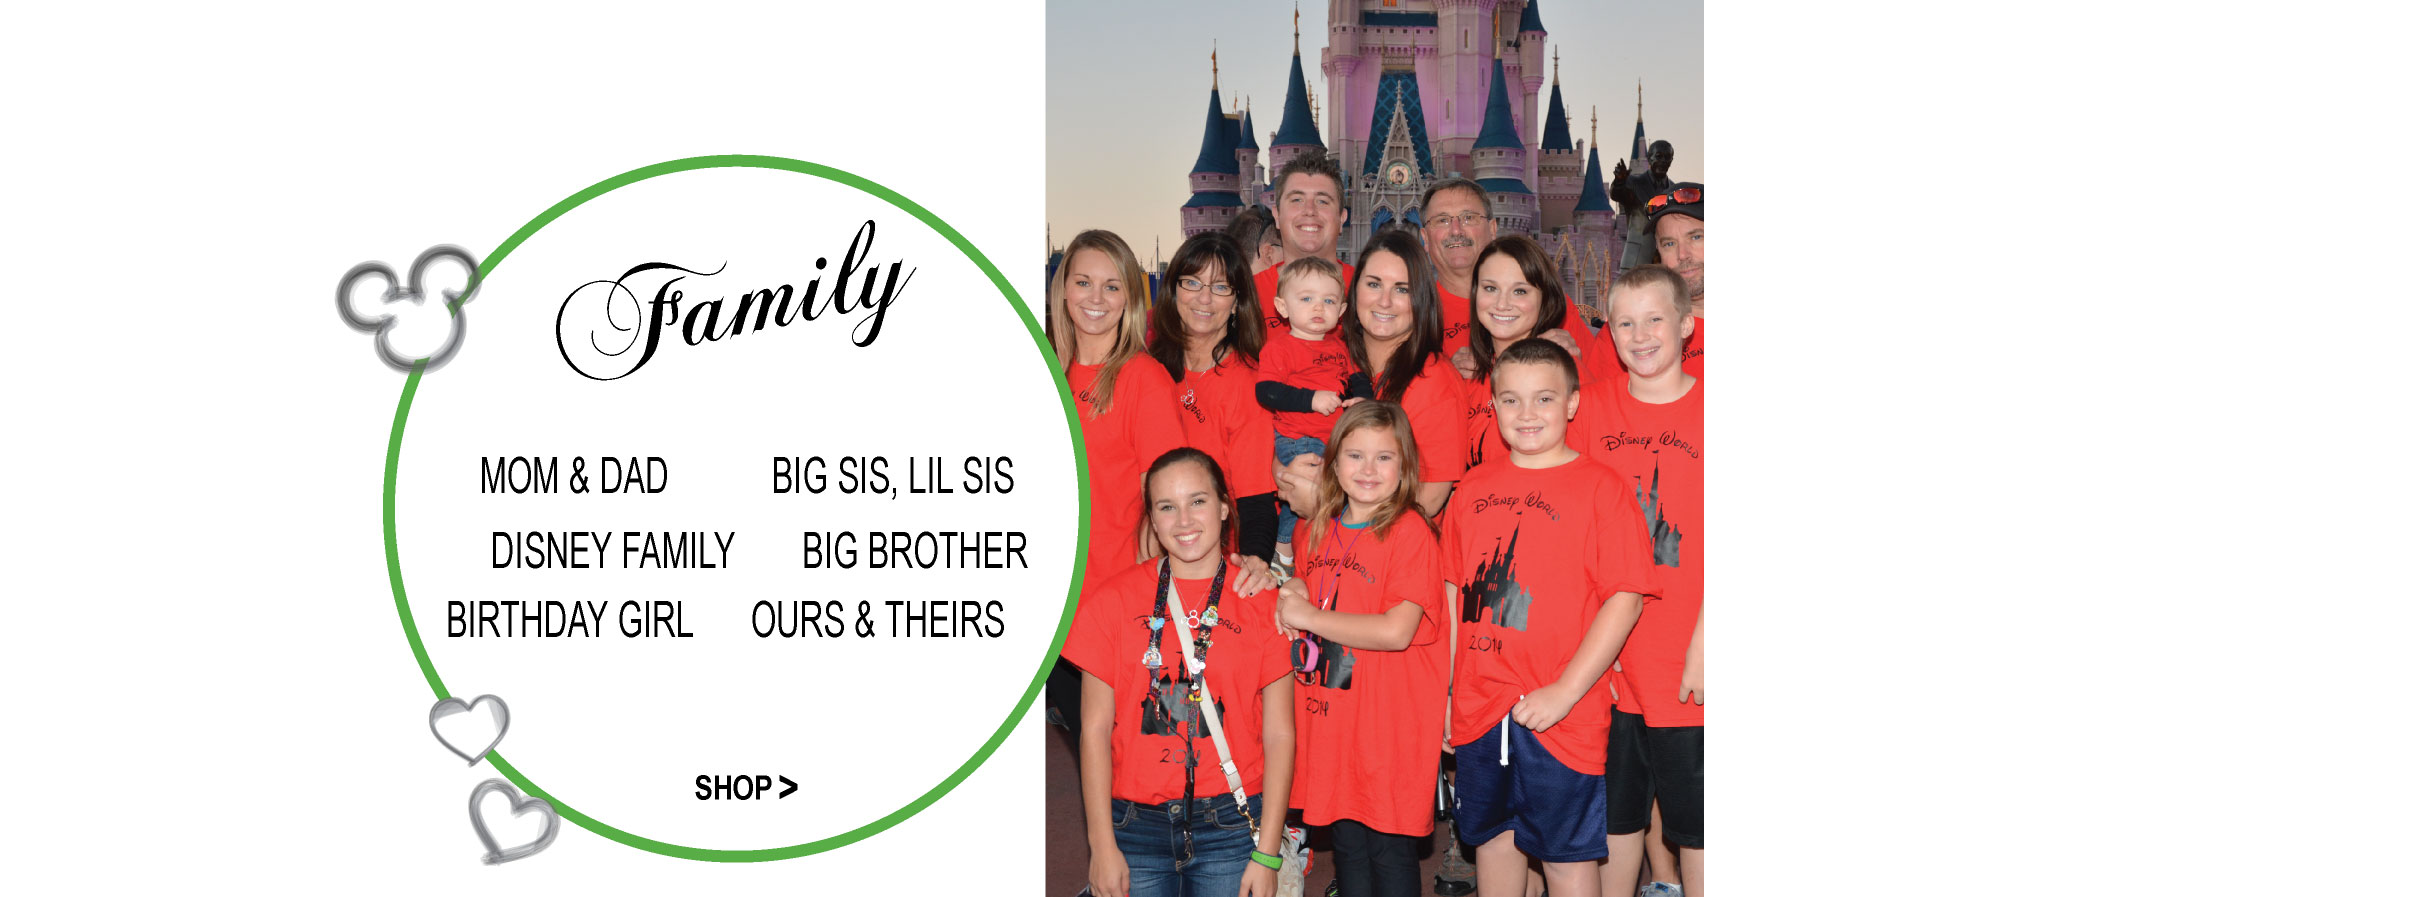 Disney Family Apparel Matching T Shirts standing in front of Disney Castle